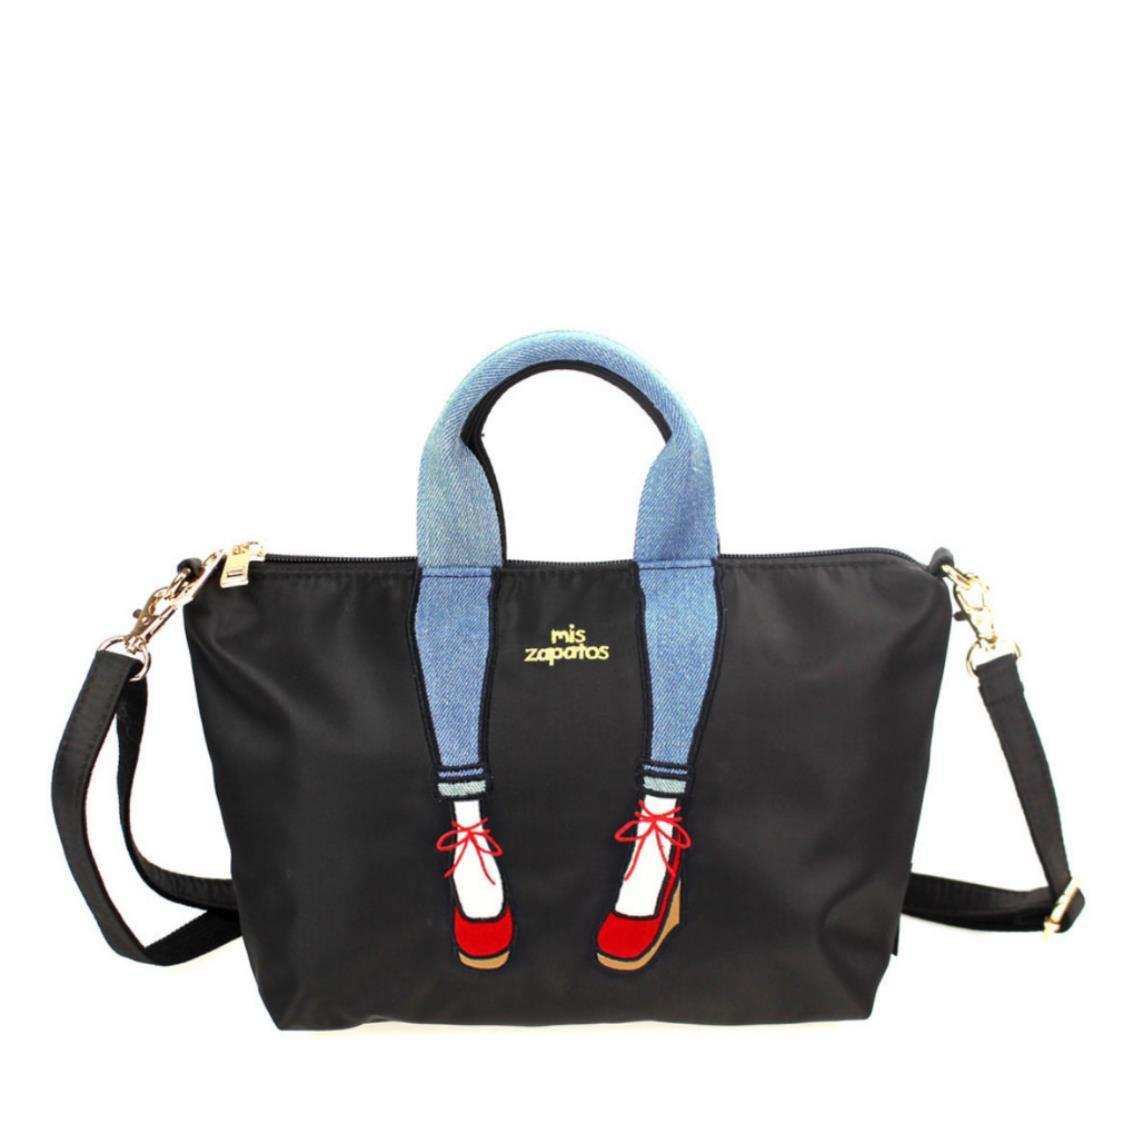 2-Way Use Jeans with Wedges Slingbag Black